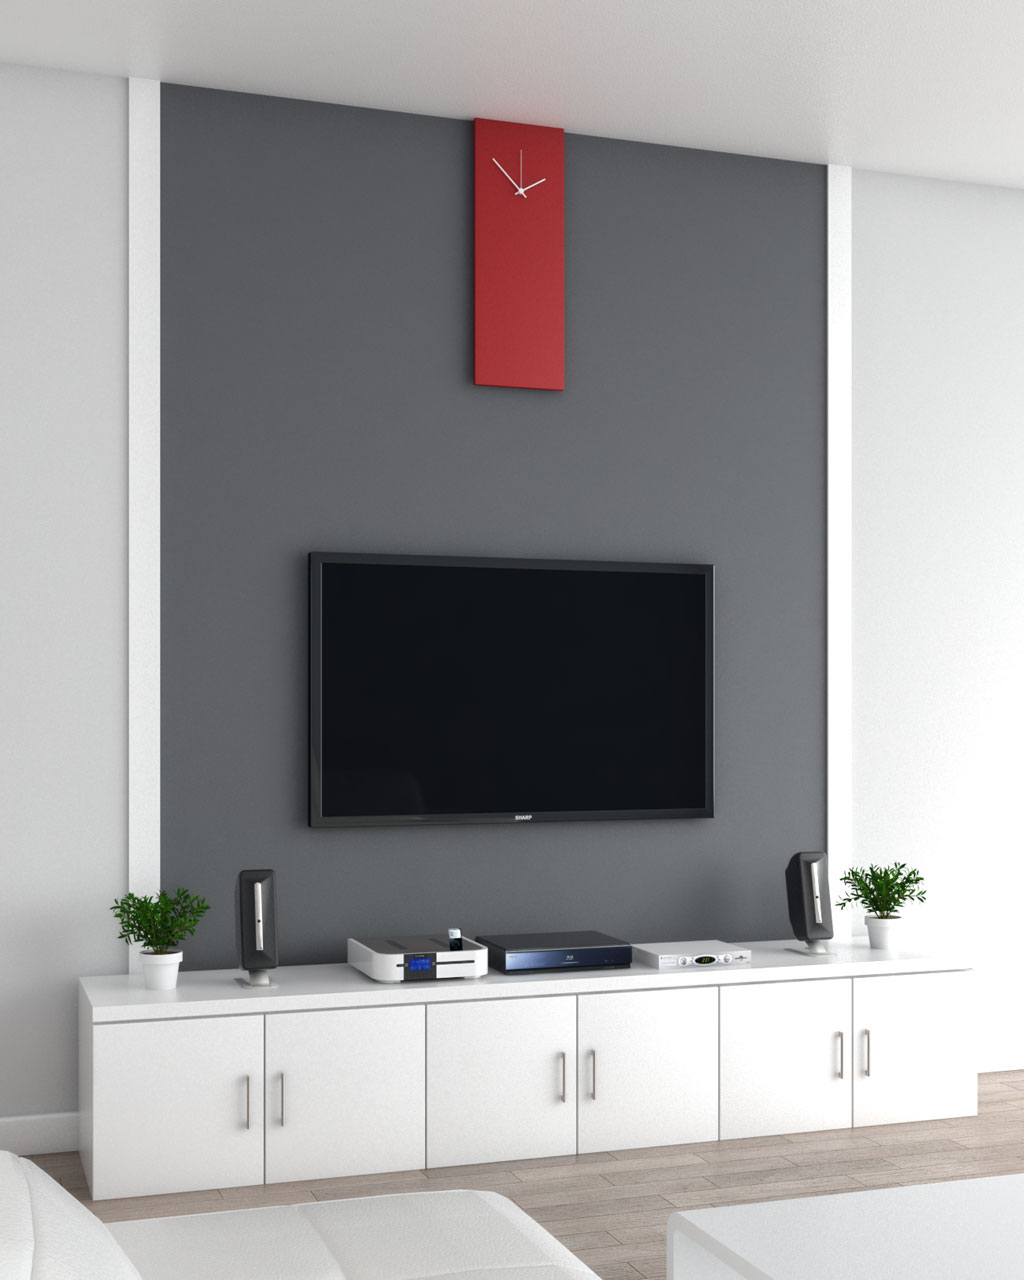 Framed gray accent wall with red clock behind a tv